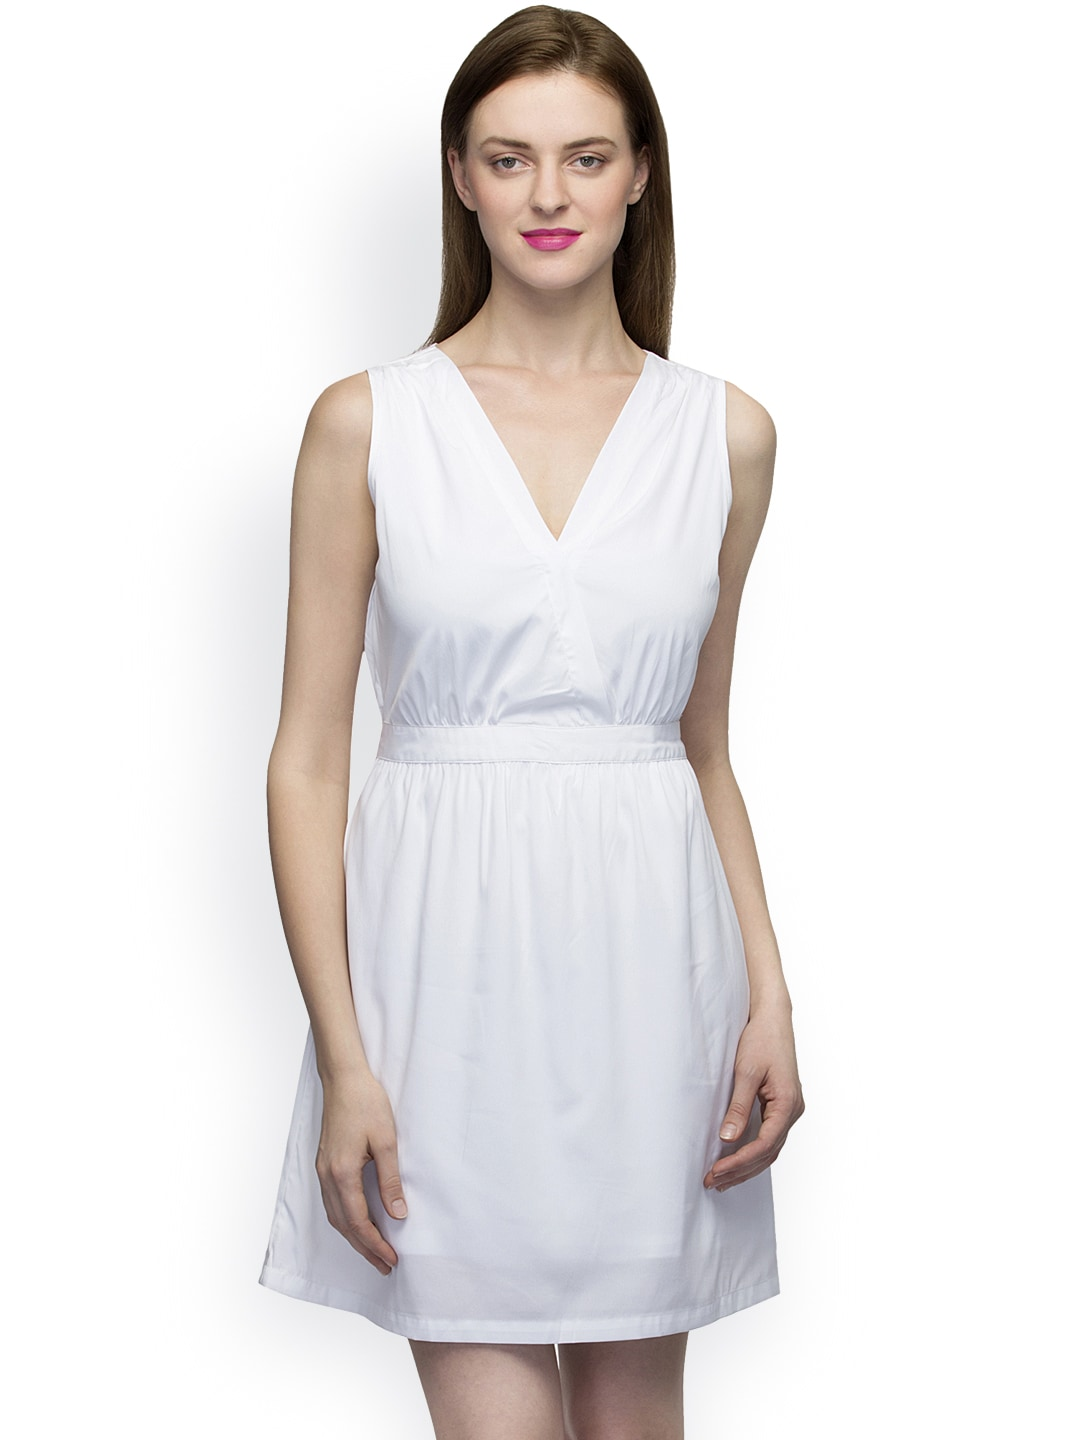 Oxolloxo Women Off-White Solid Fit & Flare Dress image